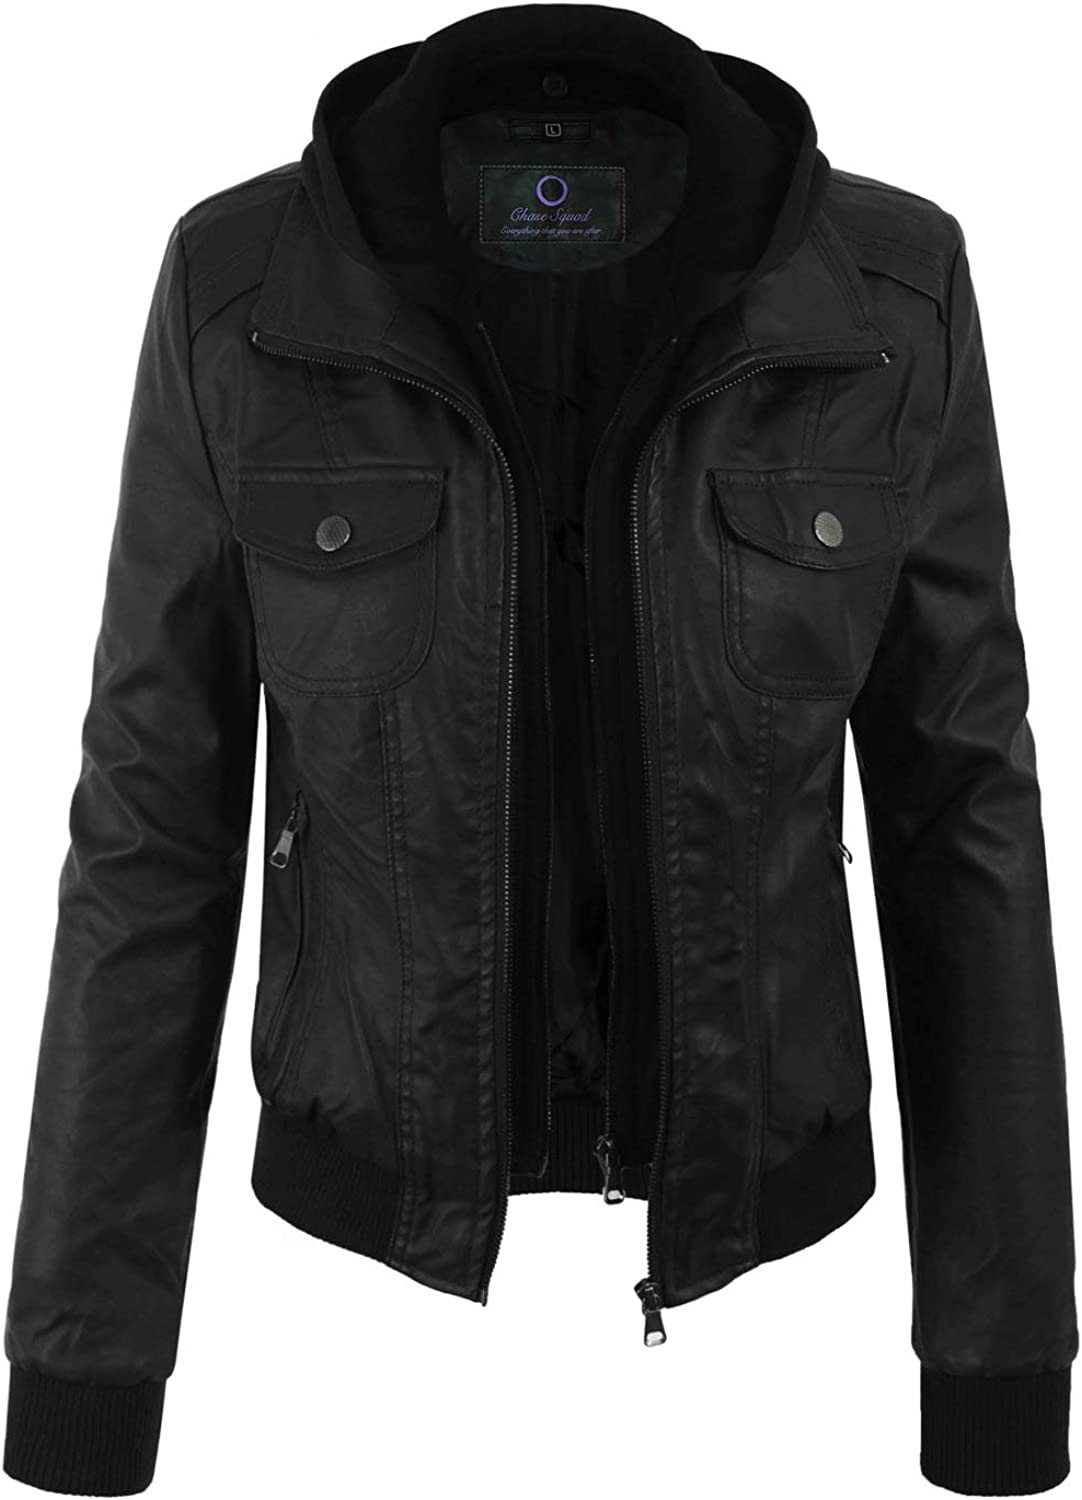 Chase Squad Faux Leather Jackets for Women  Short Body Faux Leather Jackets Black